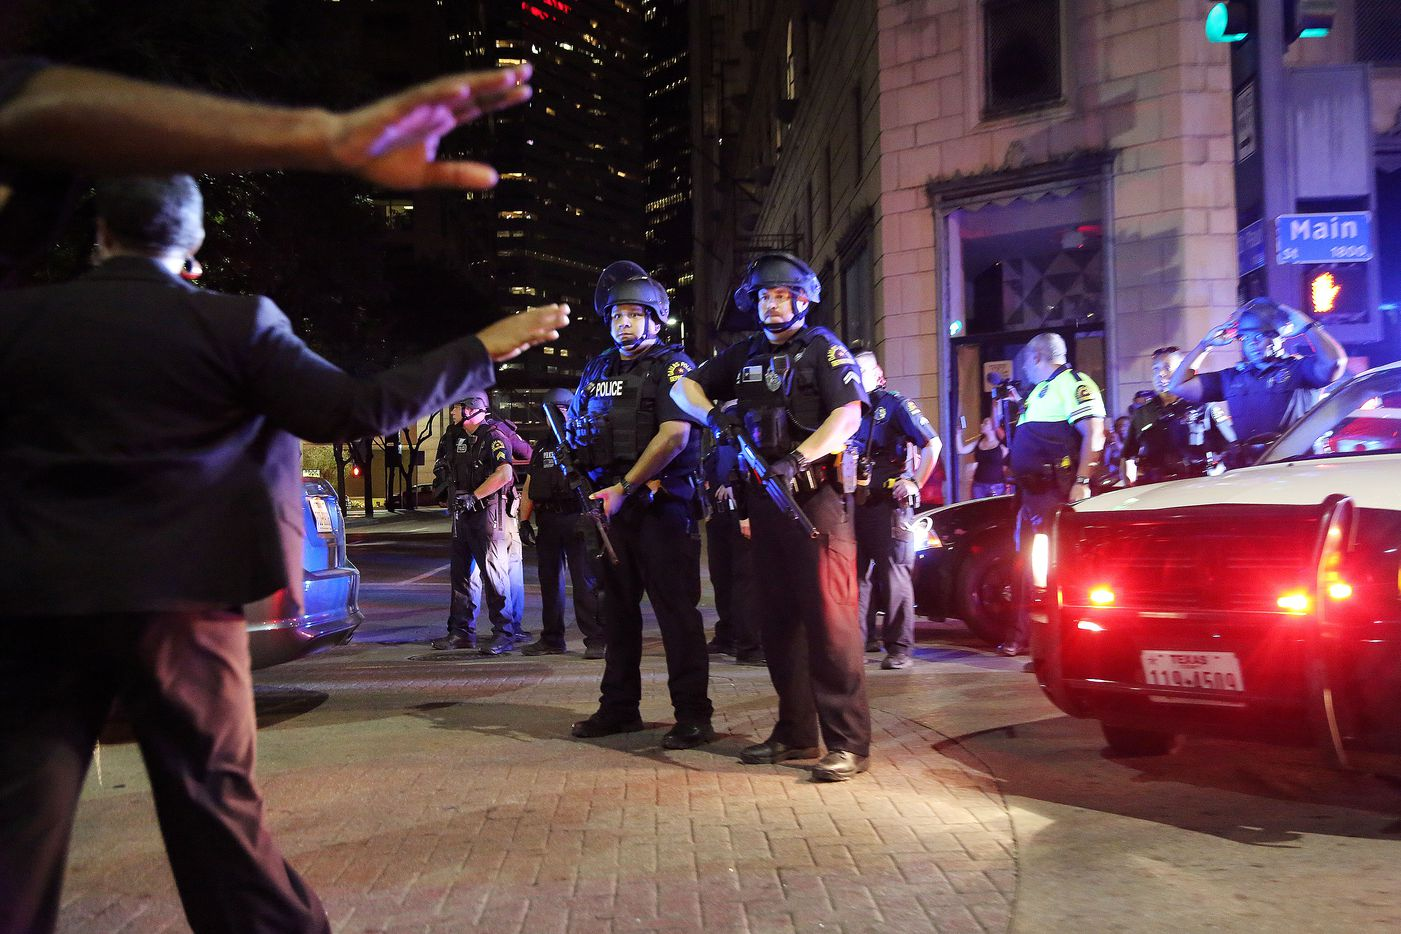 """Organizers attempt to move protesters out of the street while Dallas police officers get out of cars at the corner of Main Street and St. Paul Street during a protest held by the Next Generation Action Network in downtown Dallas Thursday September 22, 2016. The protest, which started at the Main Street Garden Park and is called """"Enough is Enough,"""" is in reaction to recent shooting by police in Tulsa and Charlotte. (Andy Jacobsohn/The Dallas Morning News)"""